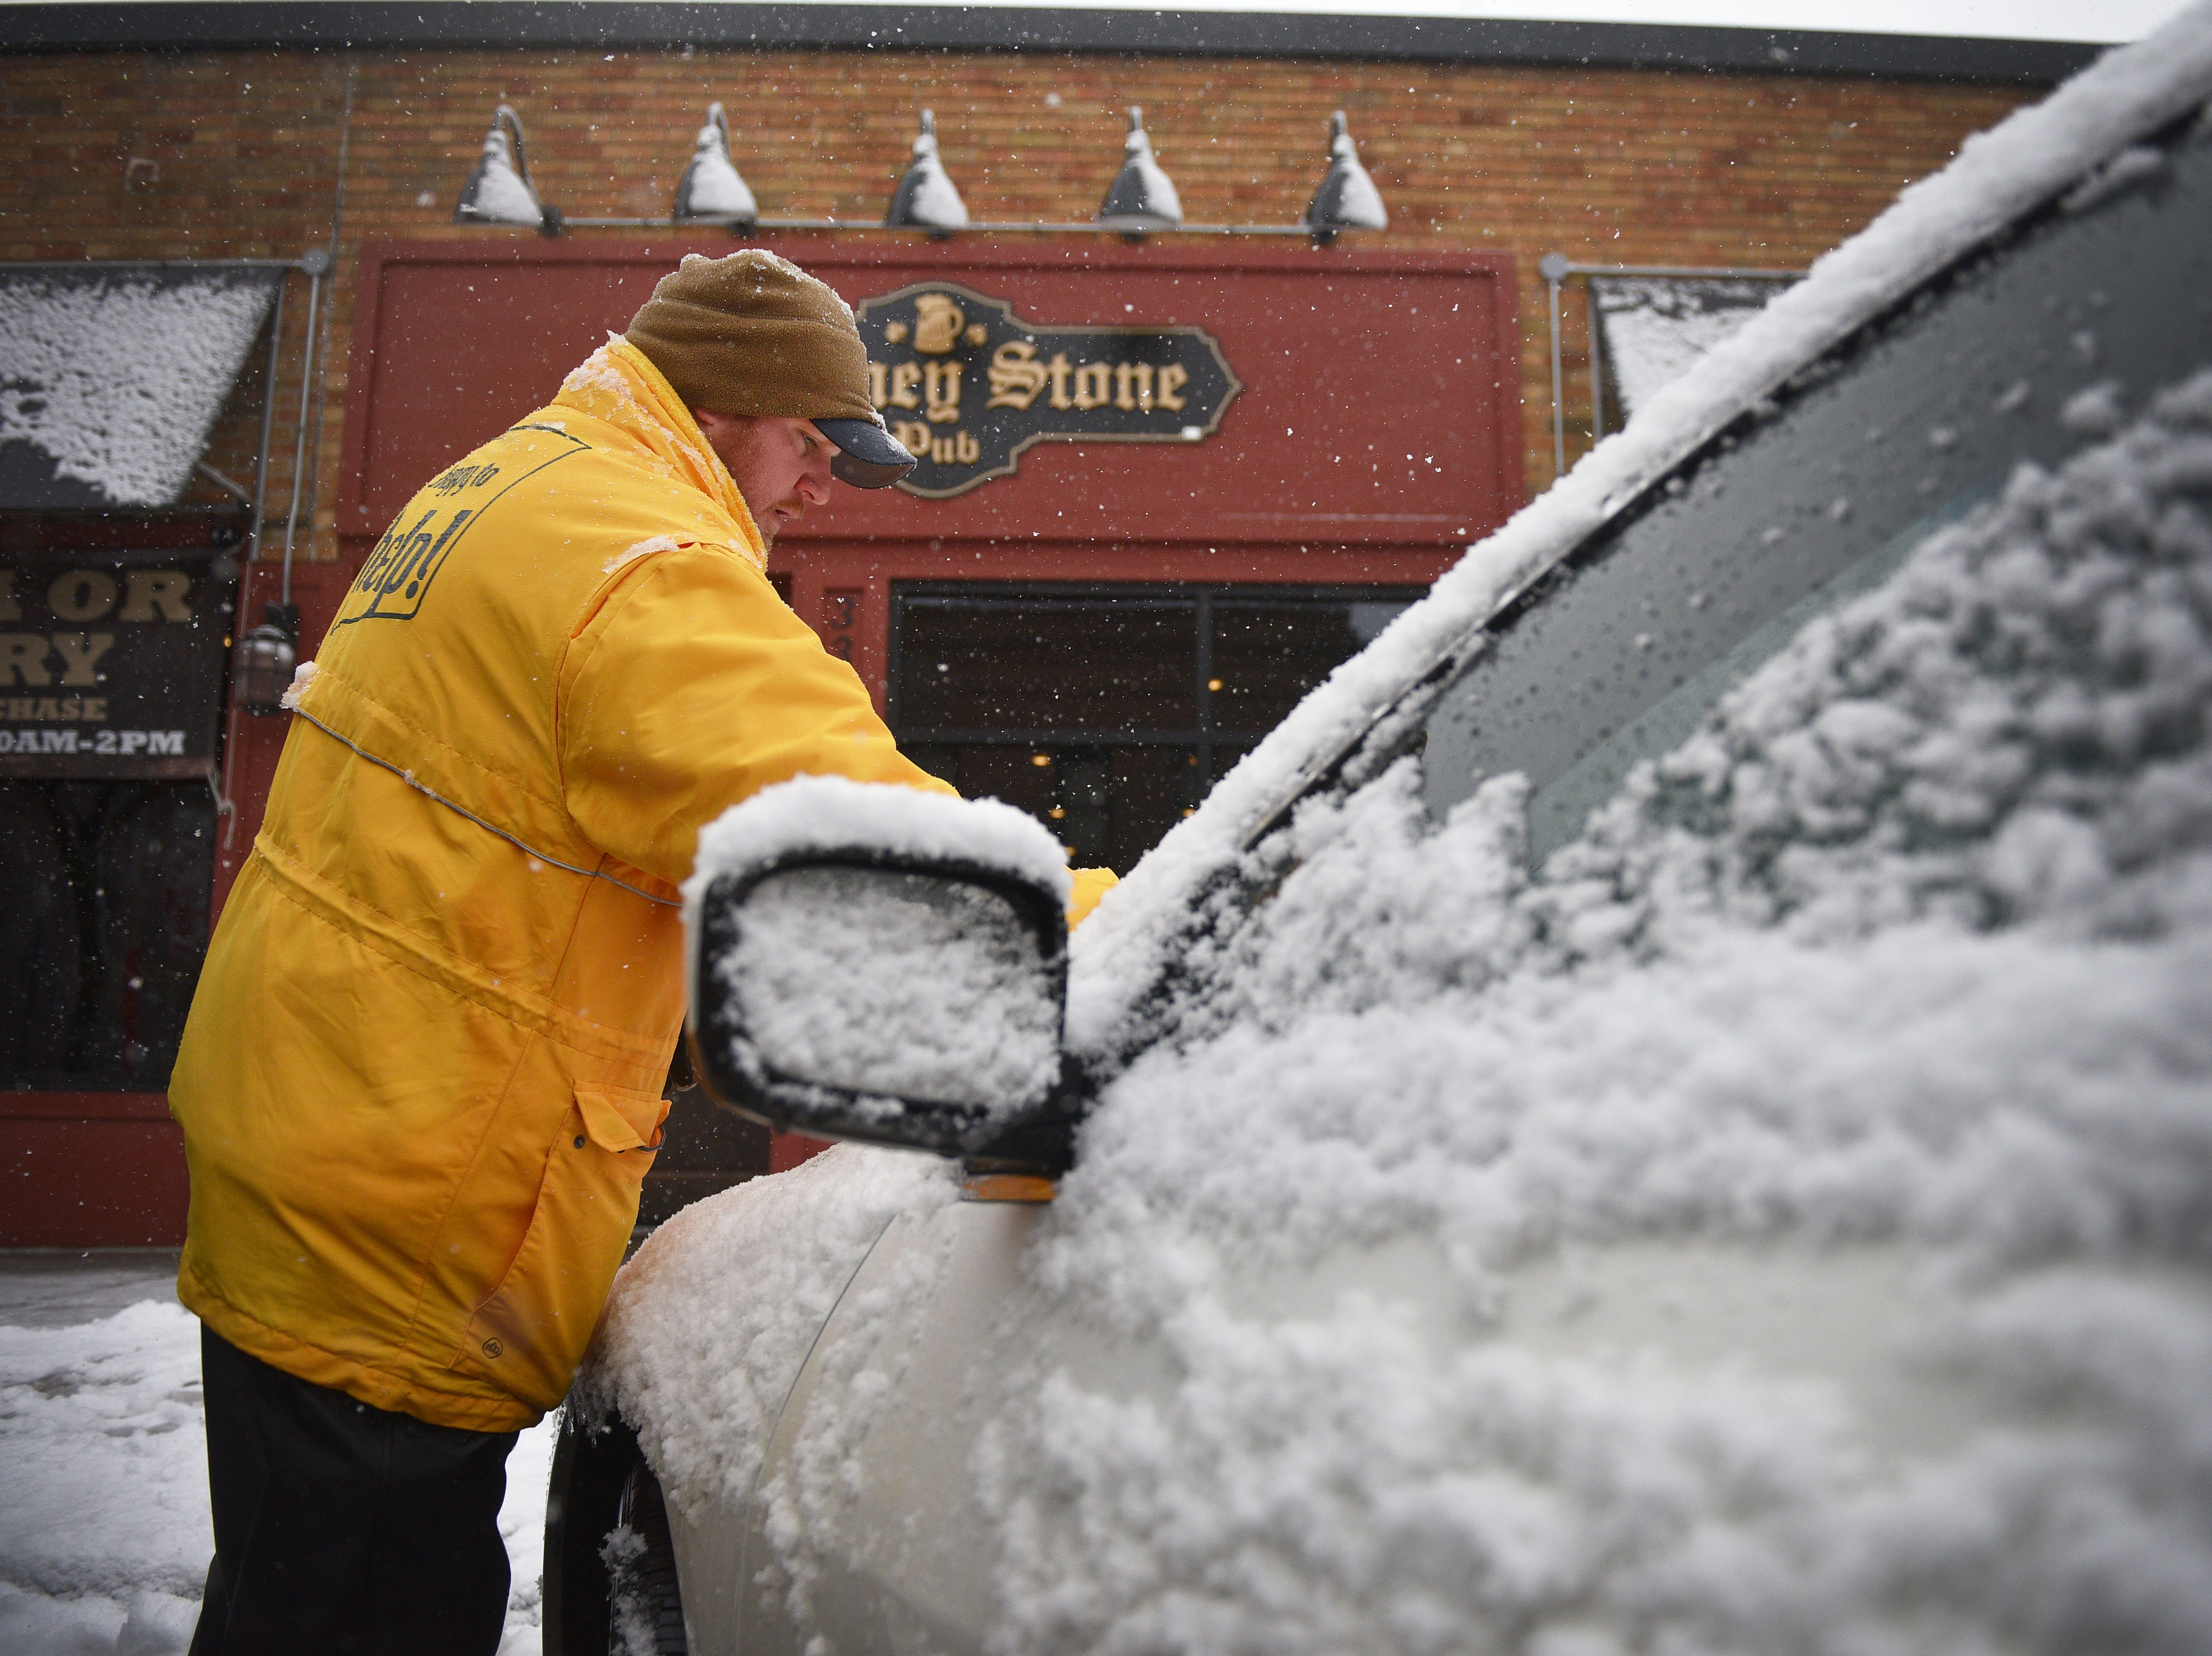 City of Sioux Falls parking patrol Dan Kirstein checks meters Thursday, Dec. 27,  in downtown Sioux Falls. More snow is expected to arrive in South Dakota on Thursday and Friday as a winter storm moves through the area.